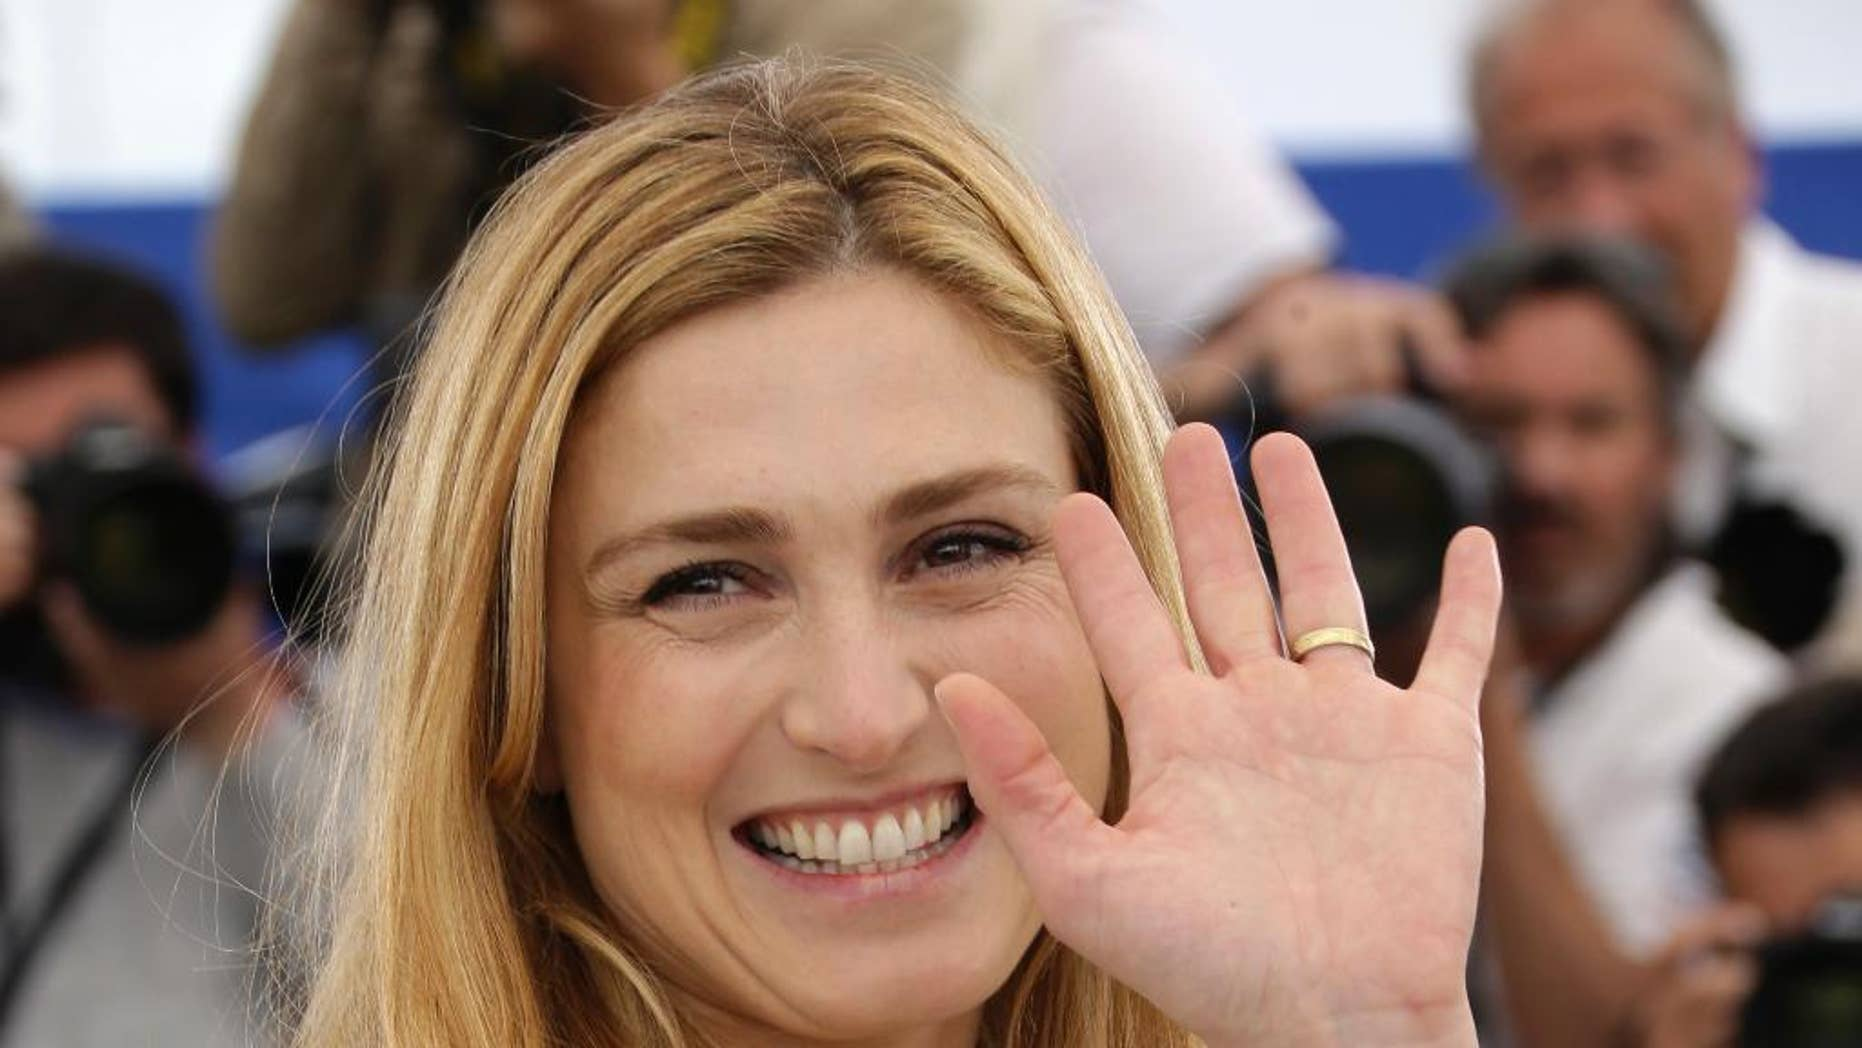 FILE - In this May 21, 2015 file photo, French actress and producer Julie Gayet poses for photographers during a photo call for the film Comoara (Treasure), at the 68th international film festival, Cannes, southern France. In her first appearance at an official ceremony in the presence of her partner President Francois Hollande, Gayet was invited Thursday June 18, 2015 to accompany her grandfather, Alain Gayet at a ceremony of commemoration of Charles de Gaulle's Appeal of June 18 at the Mont Valerien memorial west of Paris (Photo by Joel Ryan/Invision/AP, File)